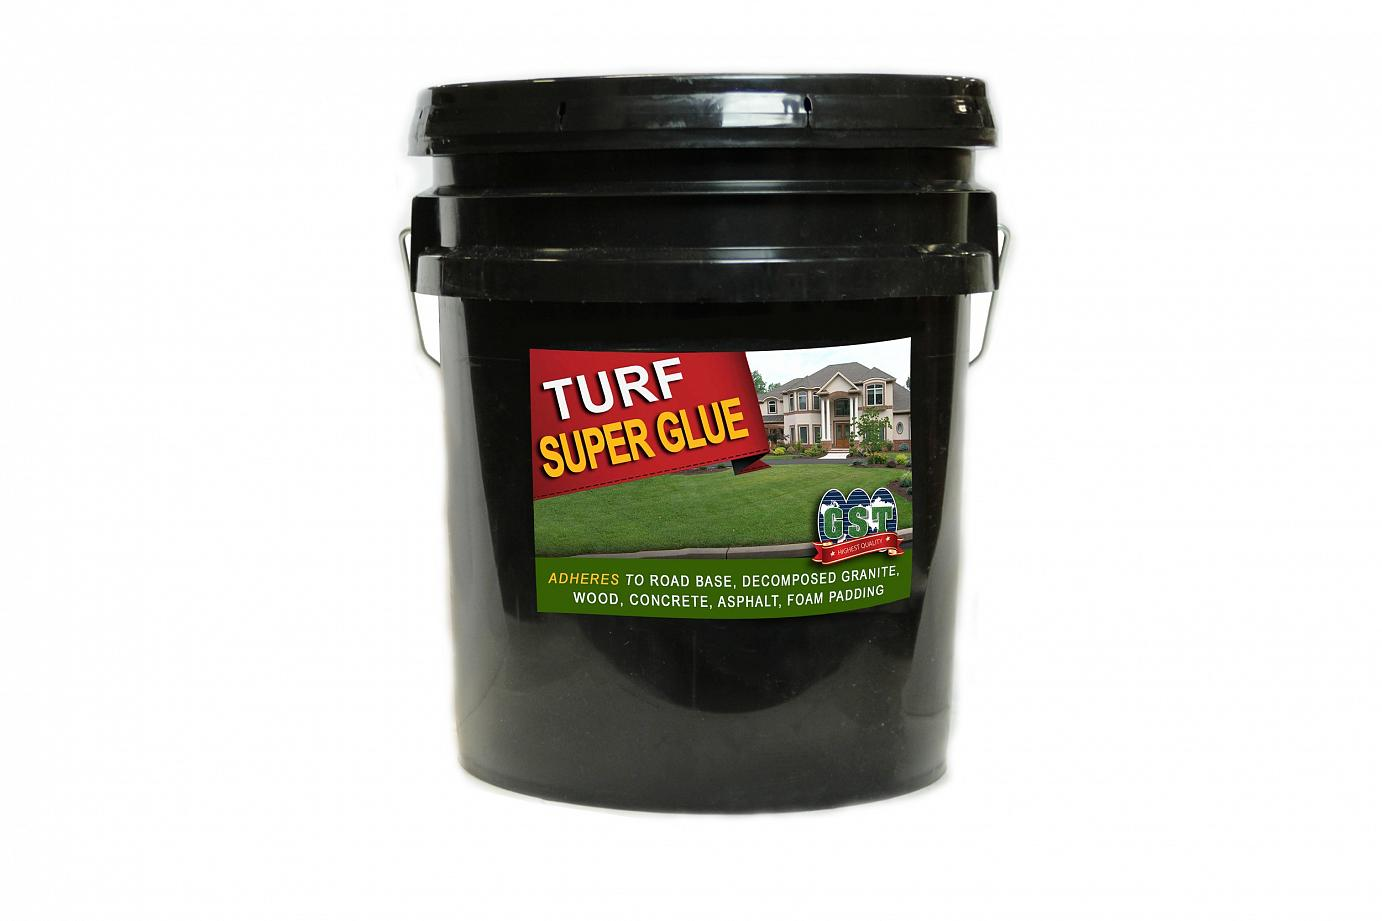 Turf Super Glue 5 Gallons Artificial Grass Synthetic Grass Tools Installation | Texas Grass